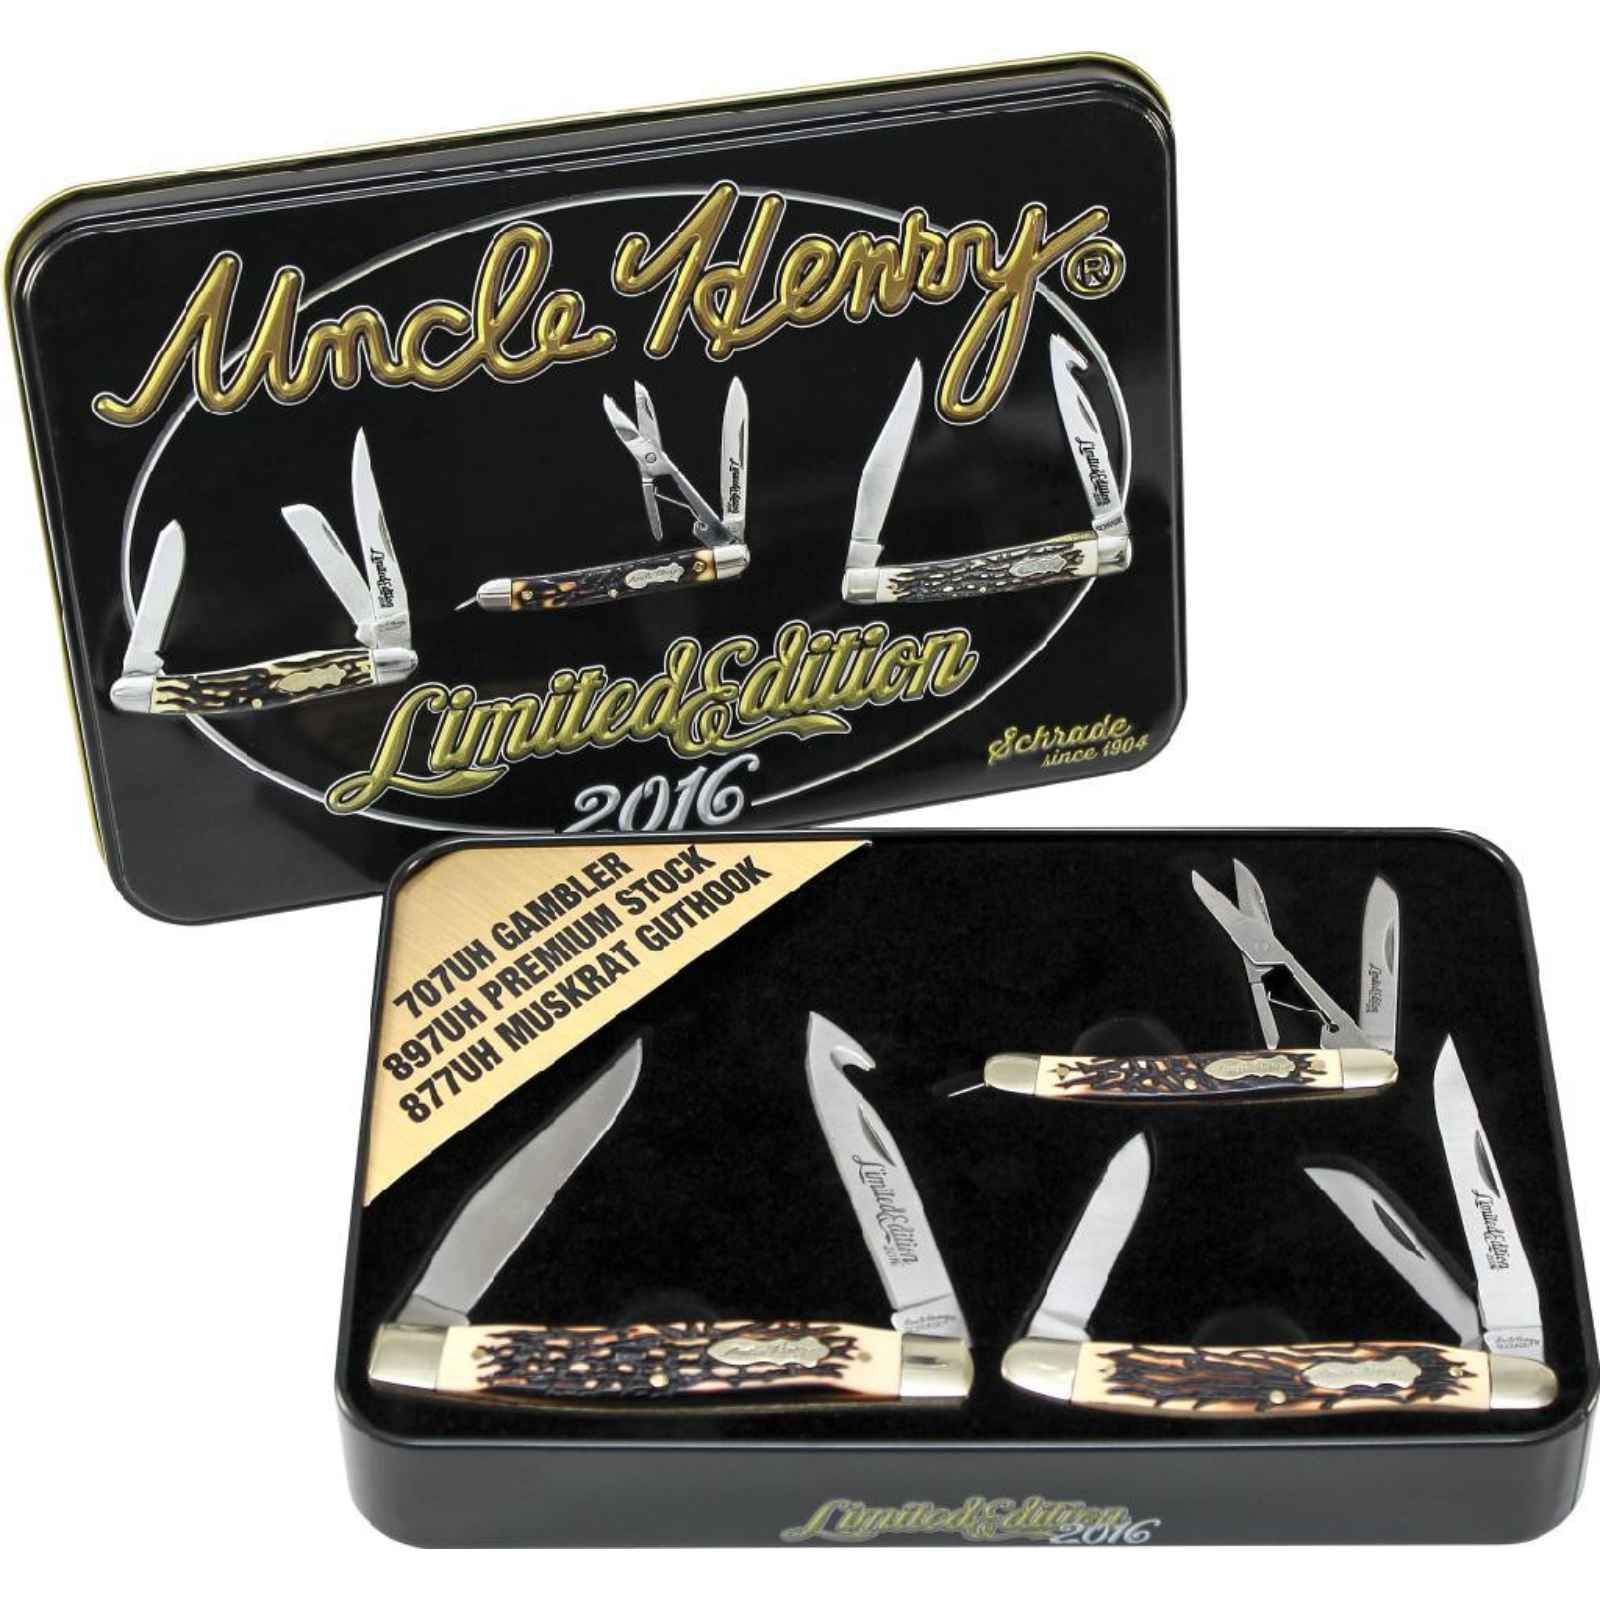 Schrade 3PC Pocket Knife Limited Gift set, SCPROM-16-41CP